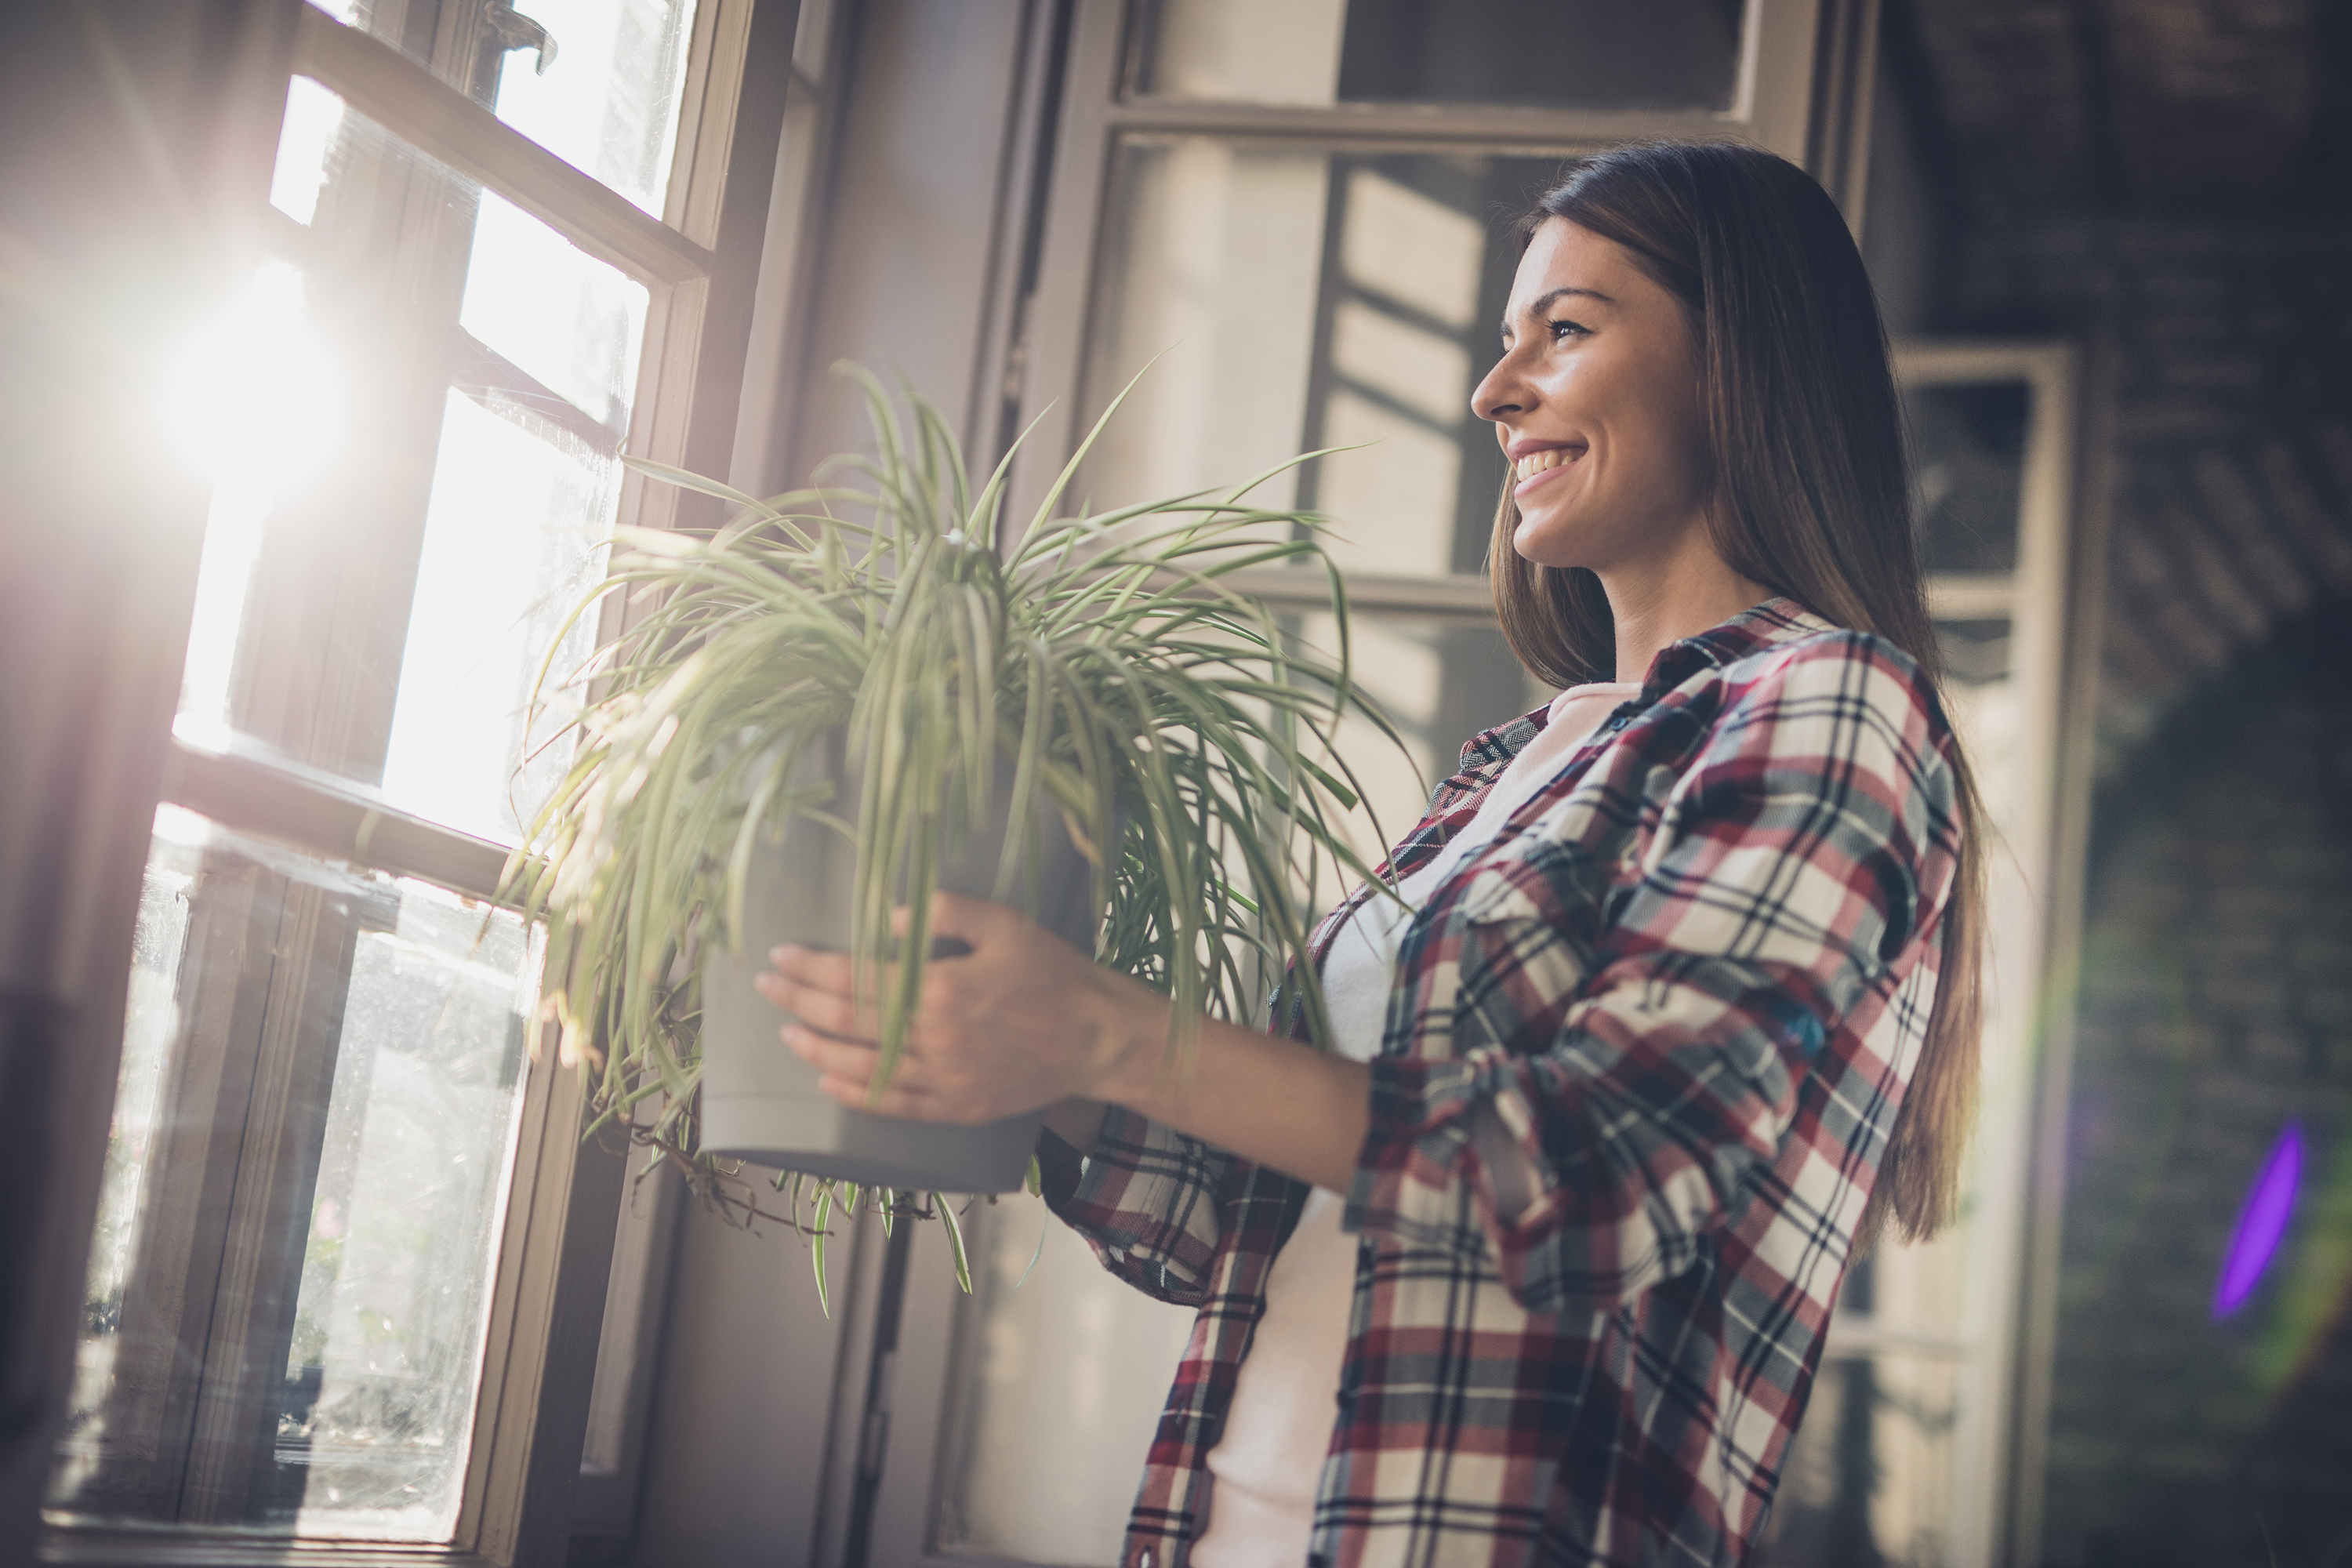 Woman Holding a Houseplant at Home